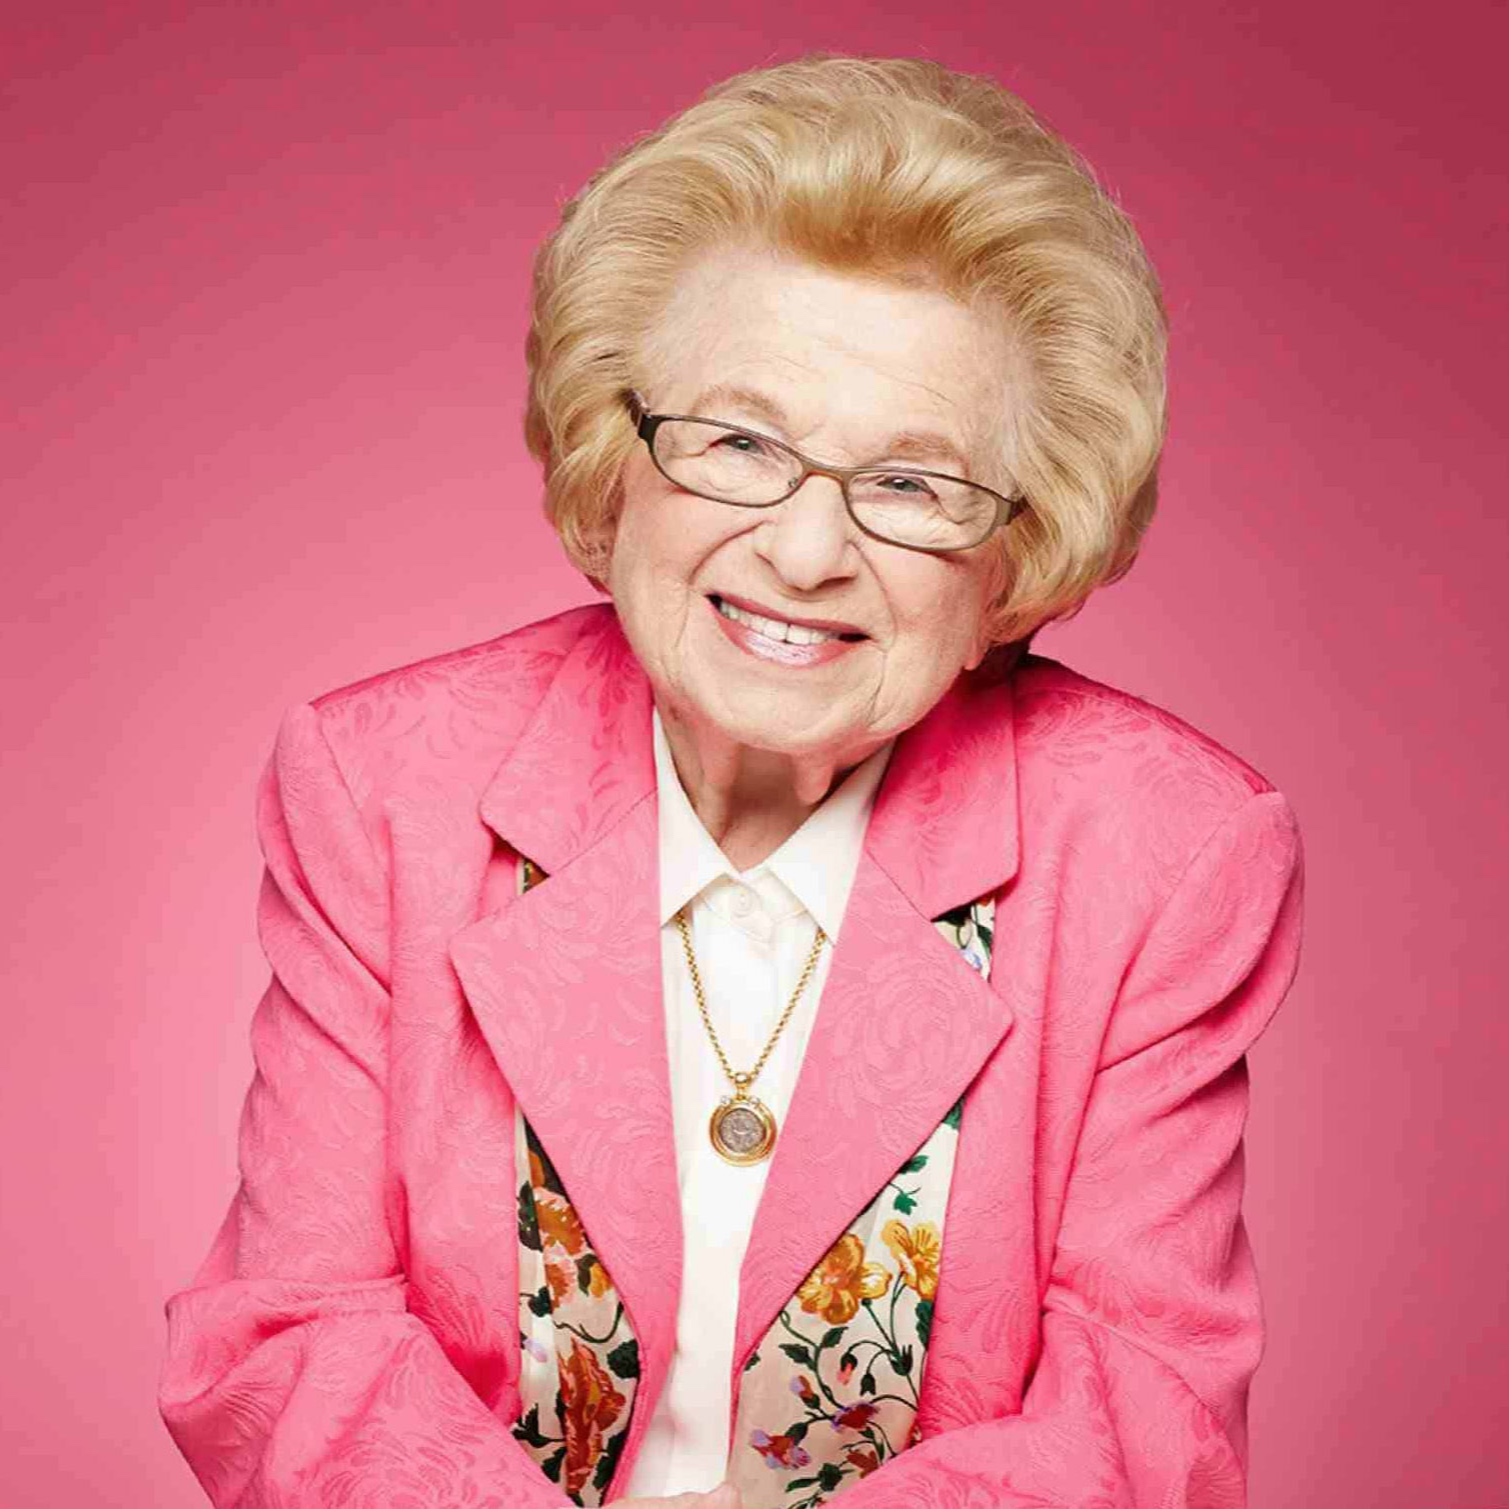 "Dr. Ruth Westheimer - Dr. Ruth is best known to radio audiences for her Sunday night self-titled program that helped revolutionize talk about sex and sexuality, which aired on hundreds of radio stations between 1984 and 1990, distributed by NBC Radio.Dr. Ruth Westheimer's media career began in 1980 when her radio show, ""Sexually Speaking,"" debuted on WYNY-FM in New York City, and by 1983, her show was the top-rated show heard in the nation's largest radio market. She was born in Germany, and lived in Switzerland, Israel and France before becoming an American citizen in the 1960's, the same time period of which she earned her doctorate at Columbia University.She was a professor before joining WYNY-FM and making her Sunday night debut."